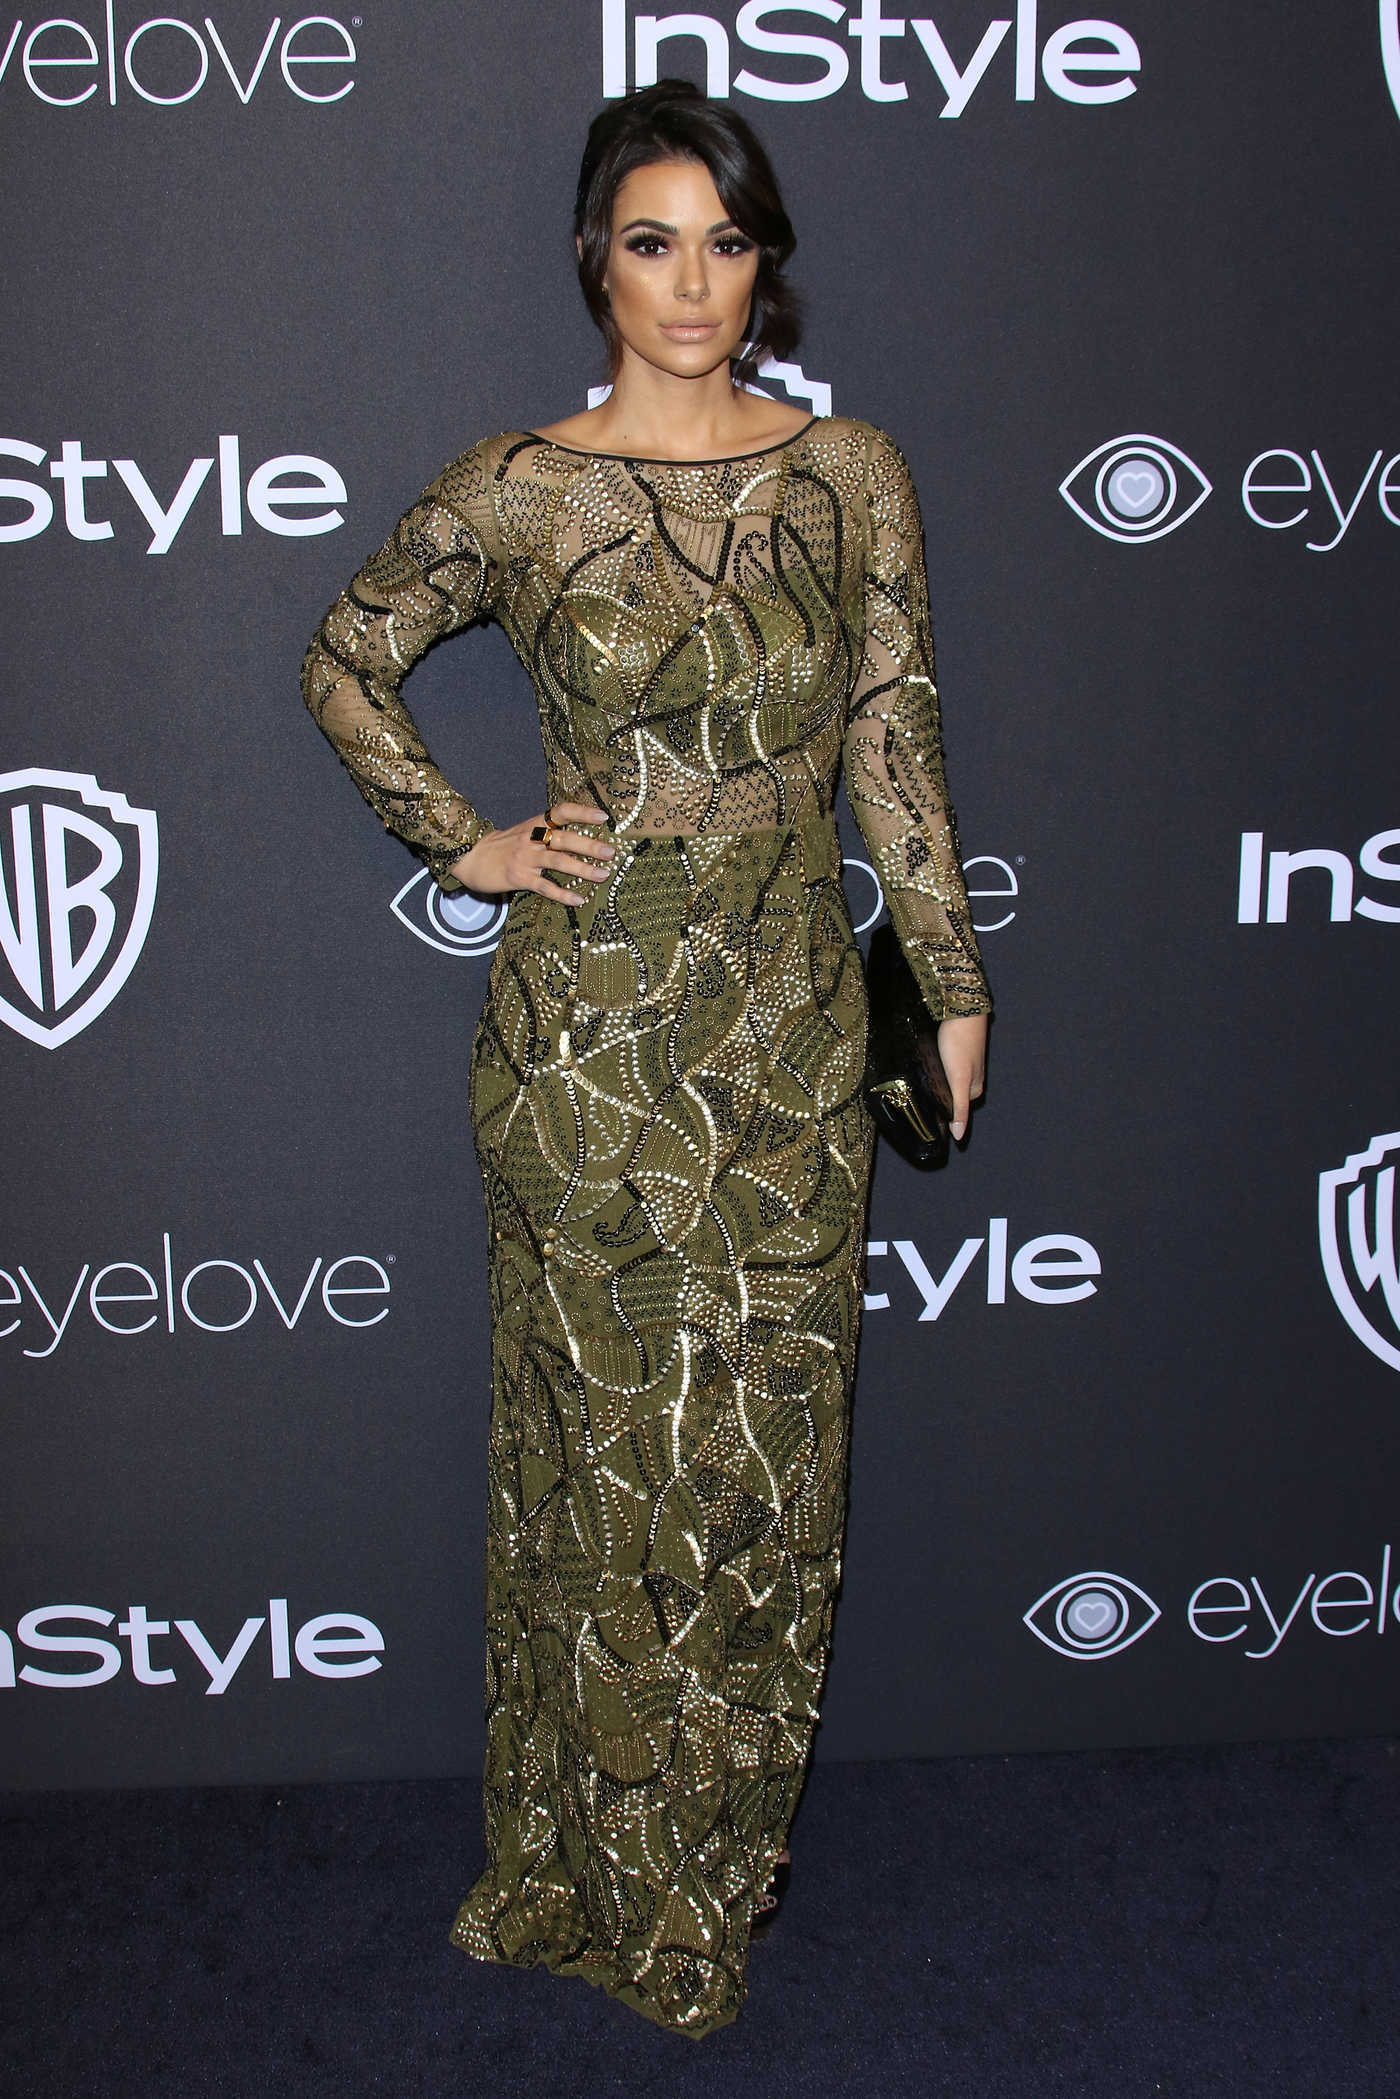 Anabelle Acosta at the 18th Annual InStyle Post-Golden Globes Party in Beverly Hills 01/08/2017